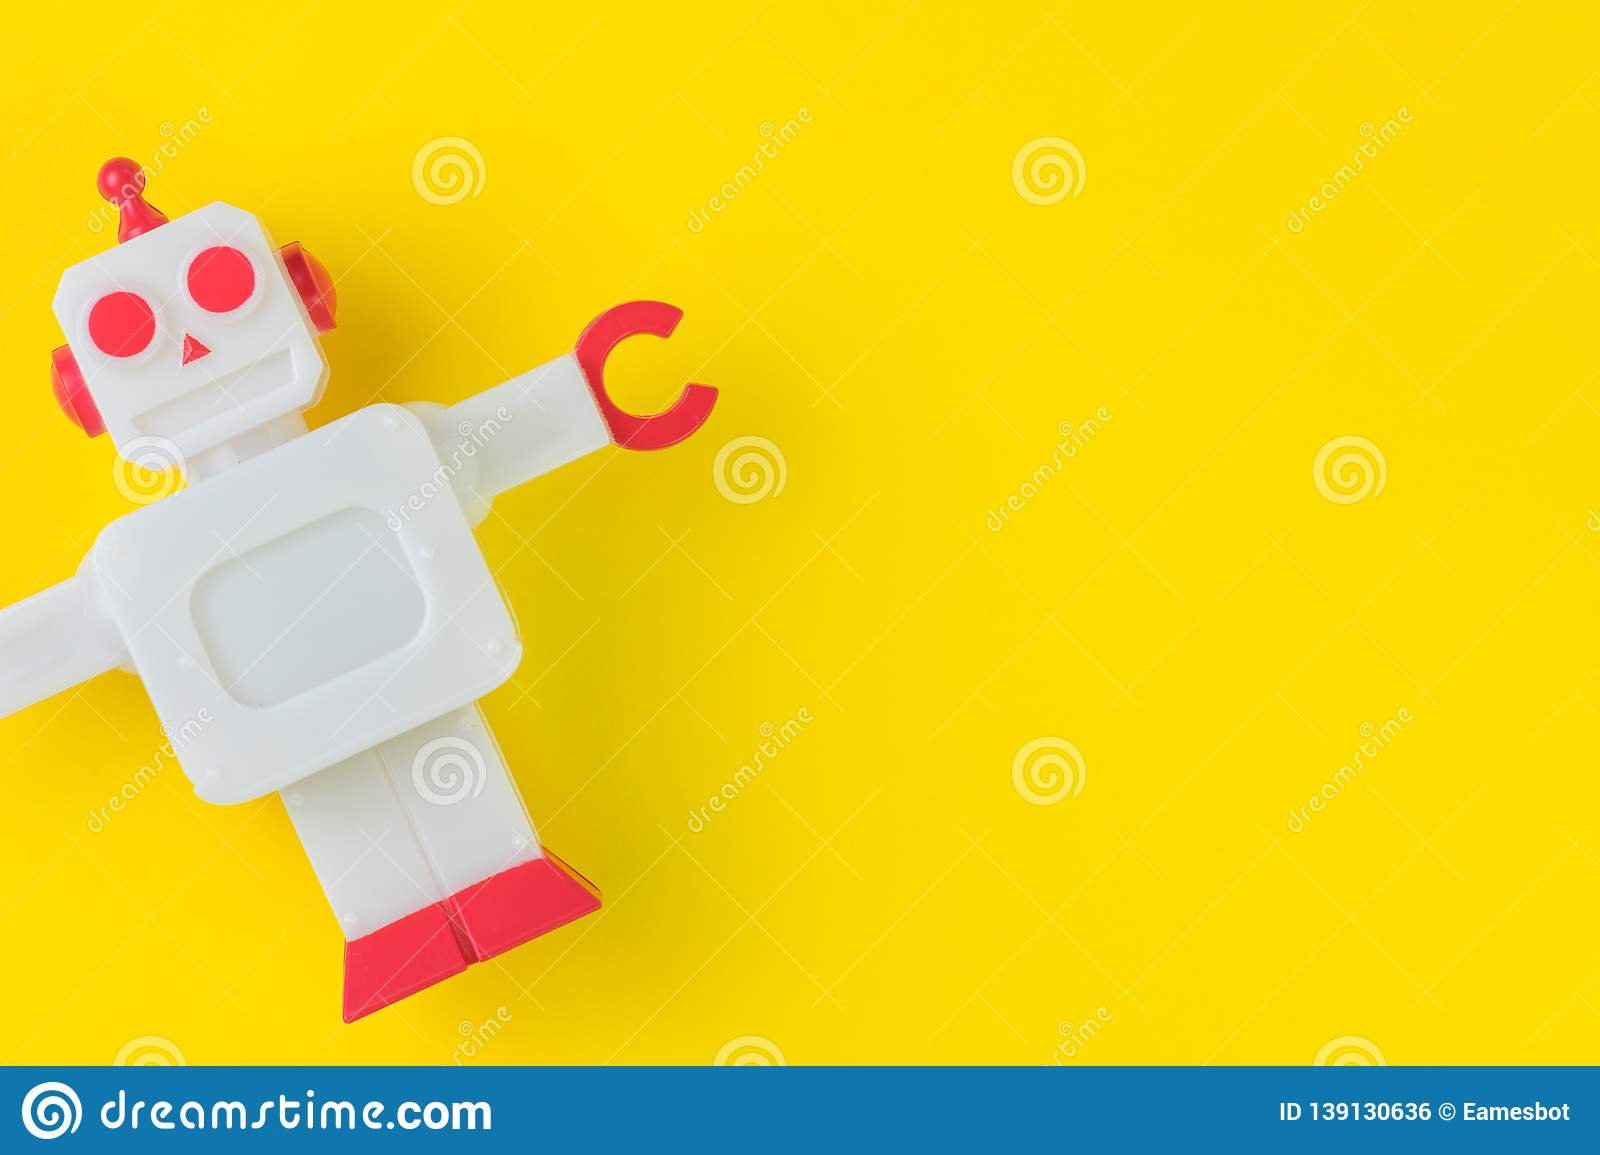 Chatbot or AI Artificial Intelligence or robotic concept, cute vintage look plastic robot on vivid yellow background